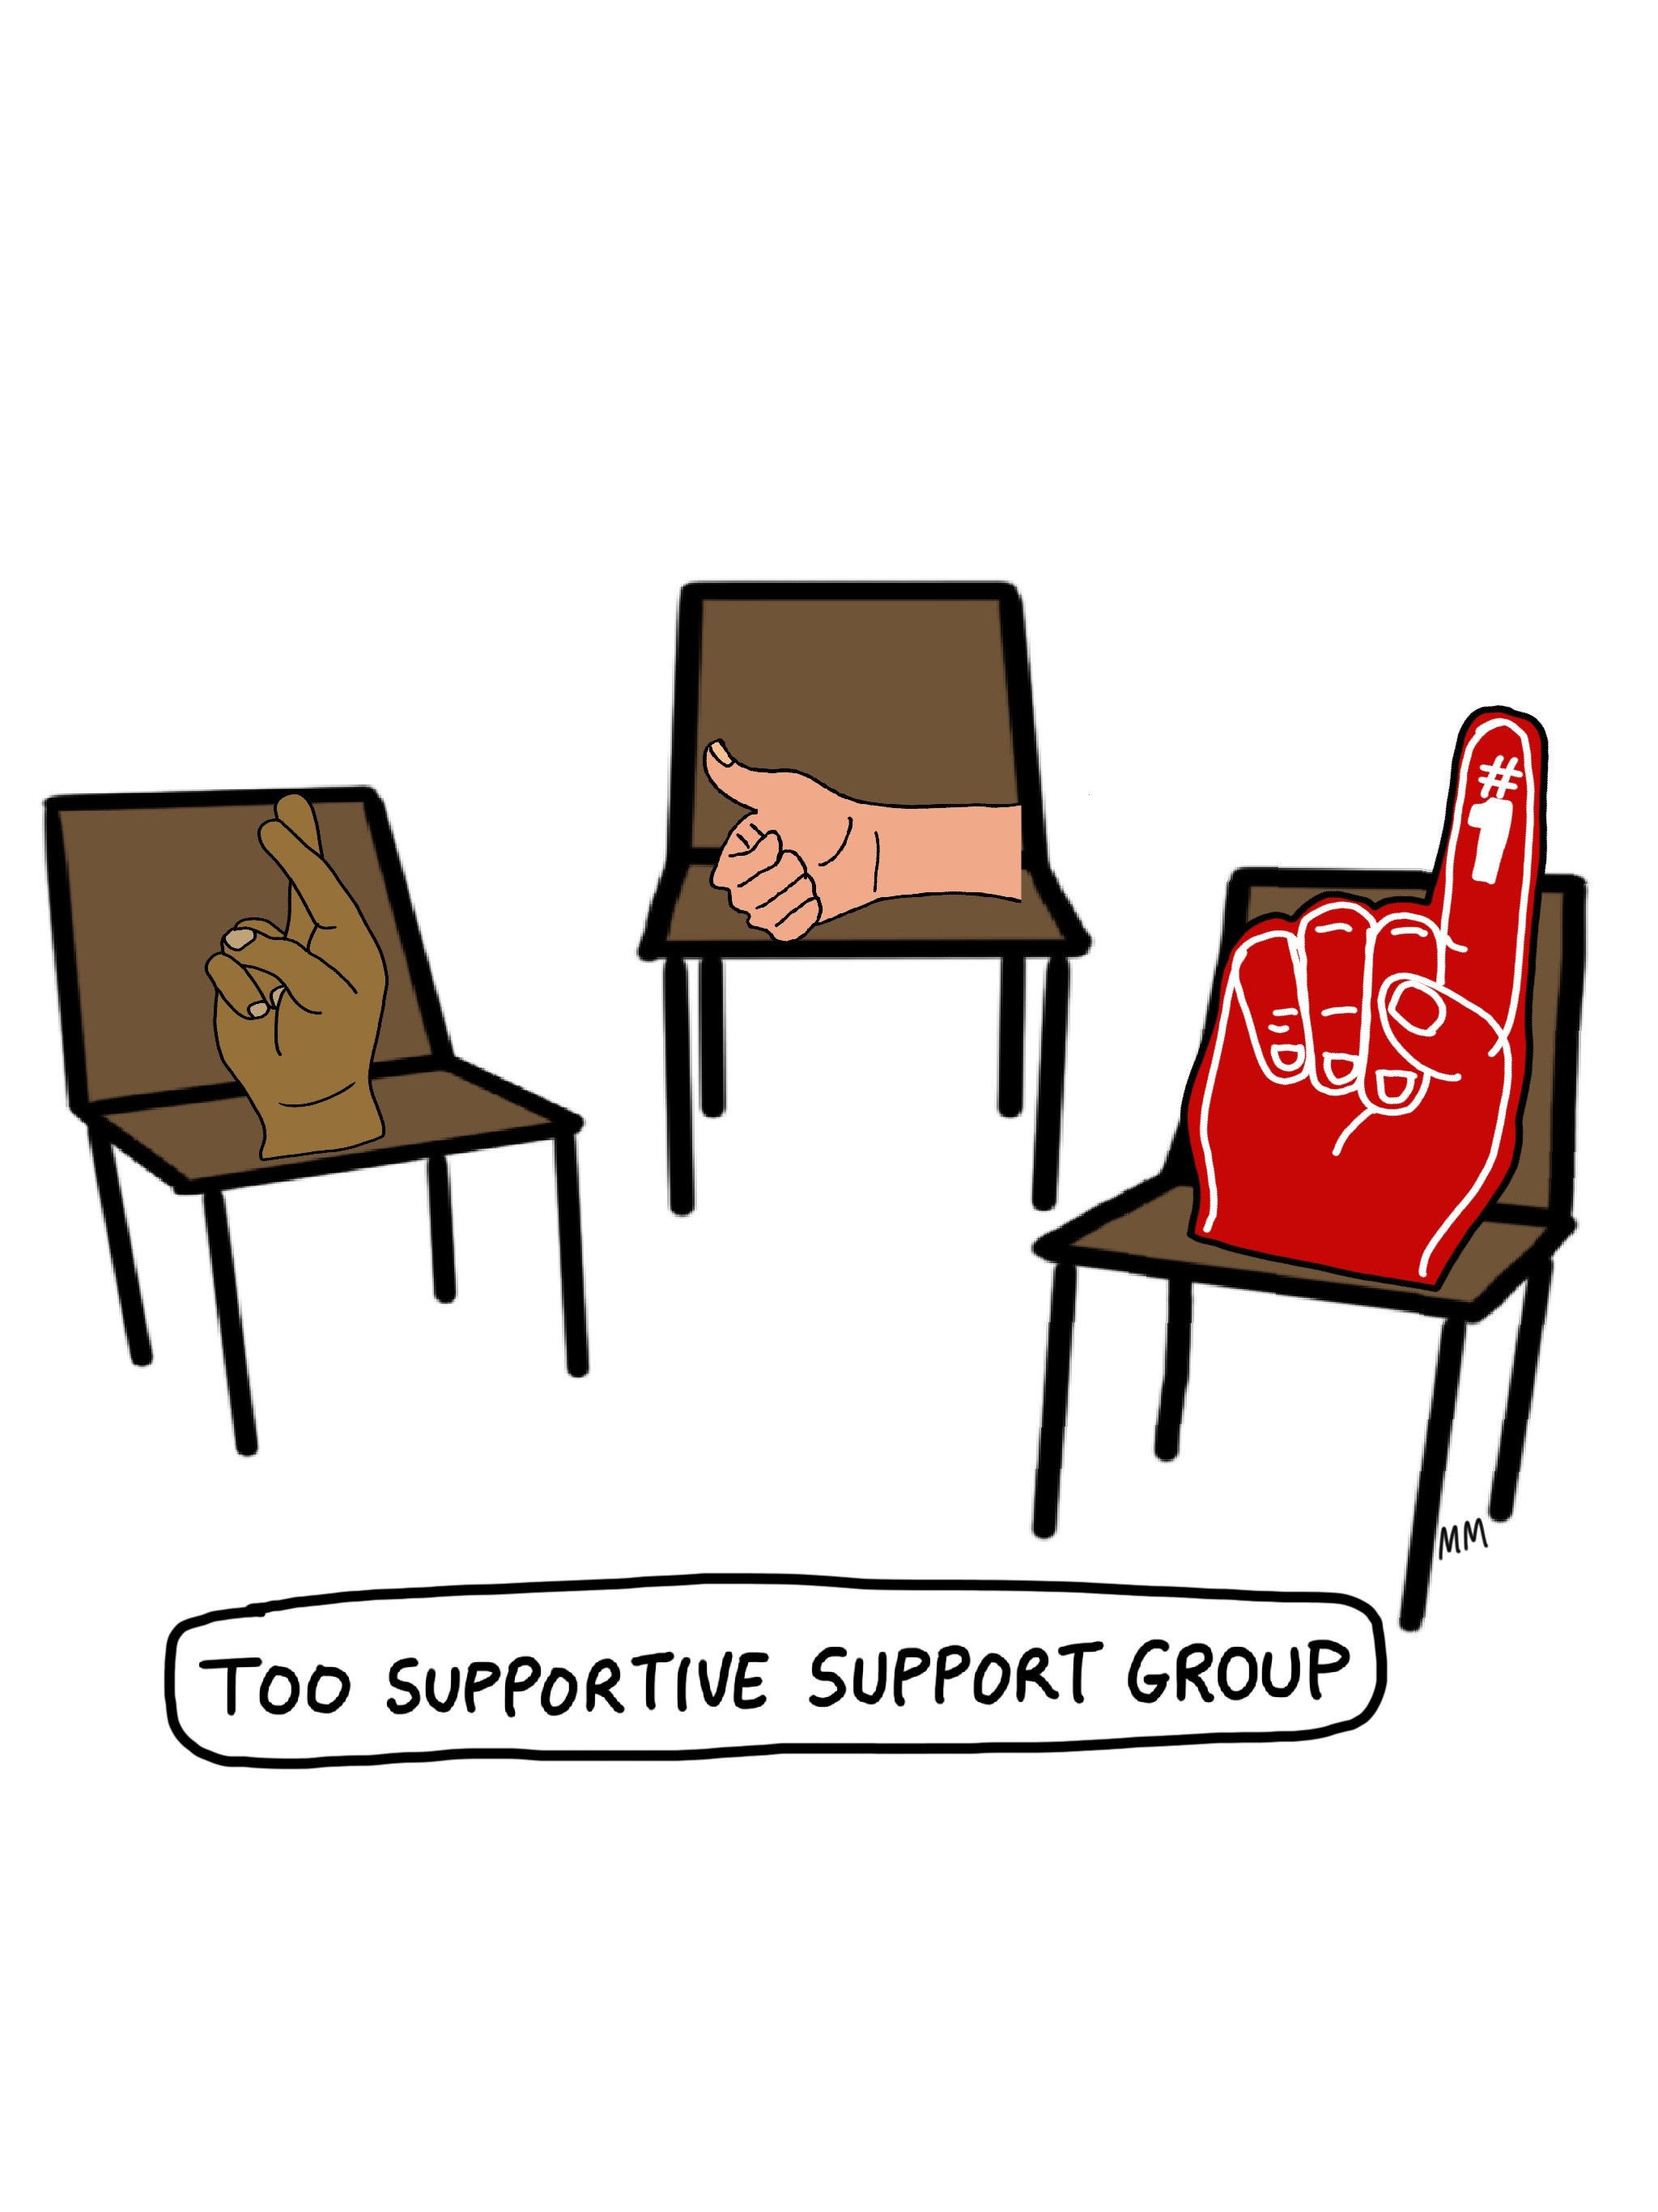 Too Supportive Support Group